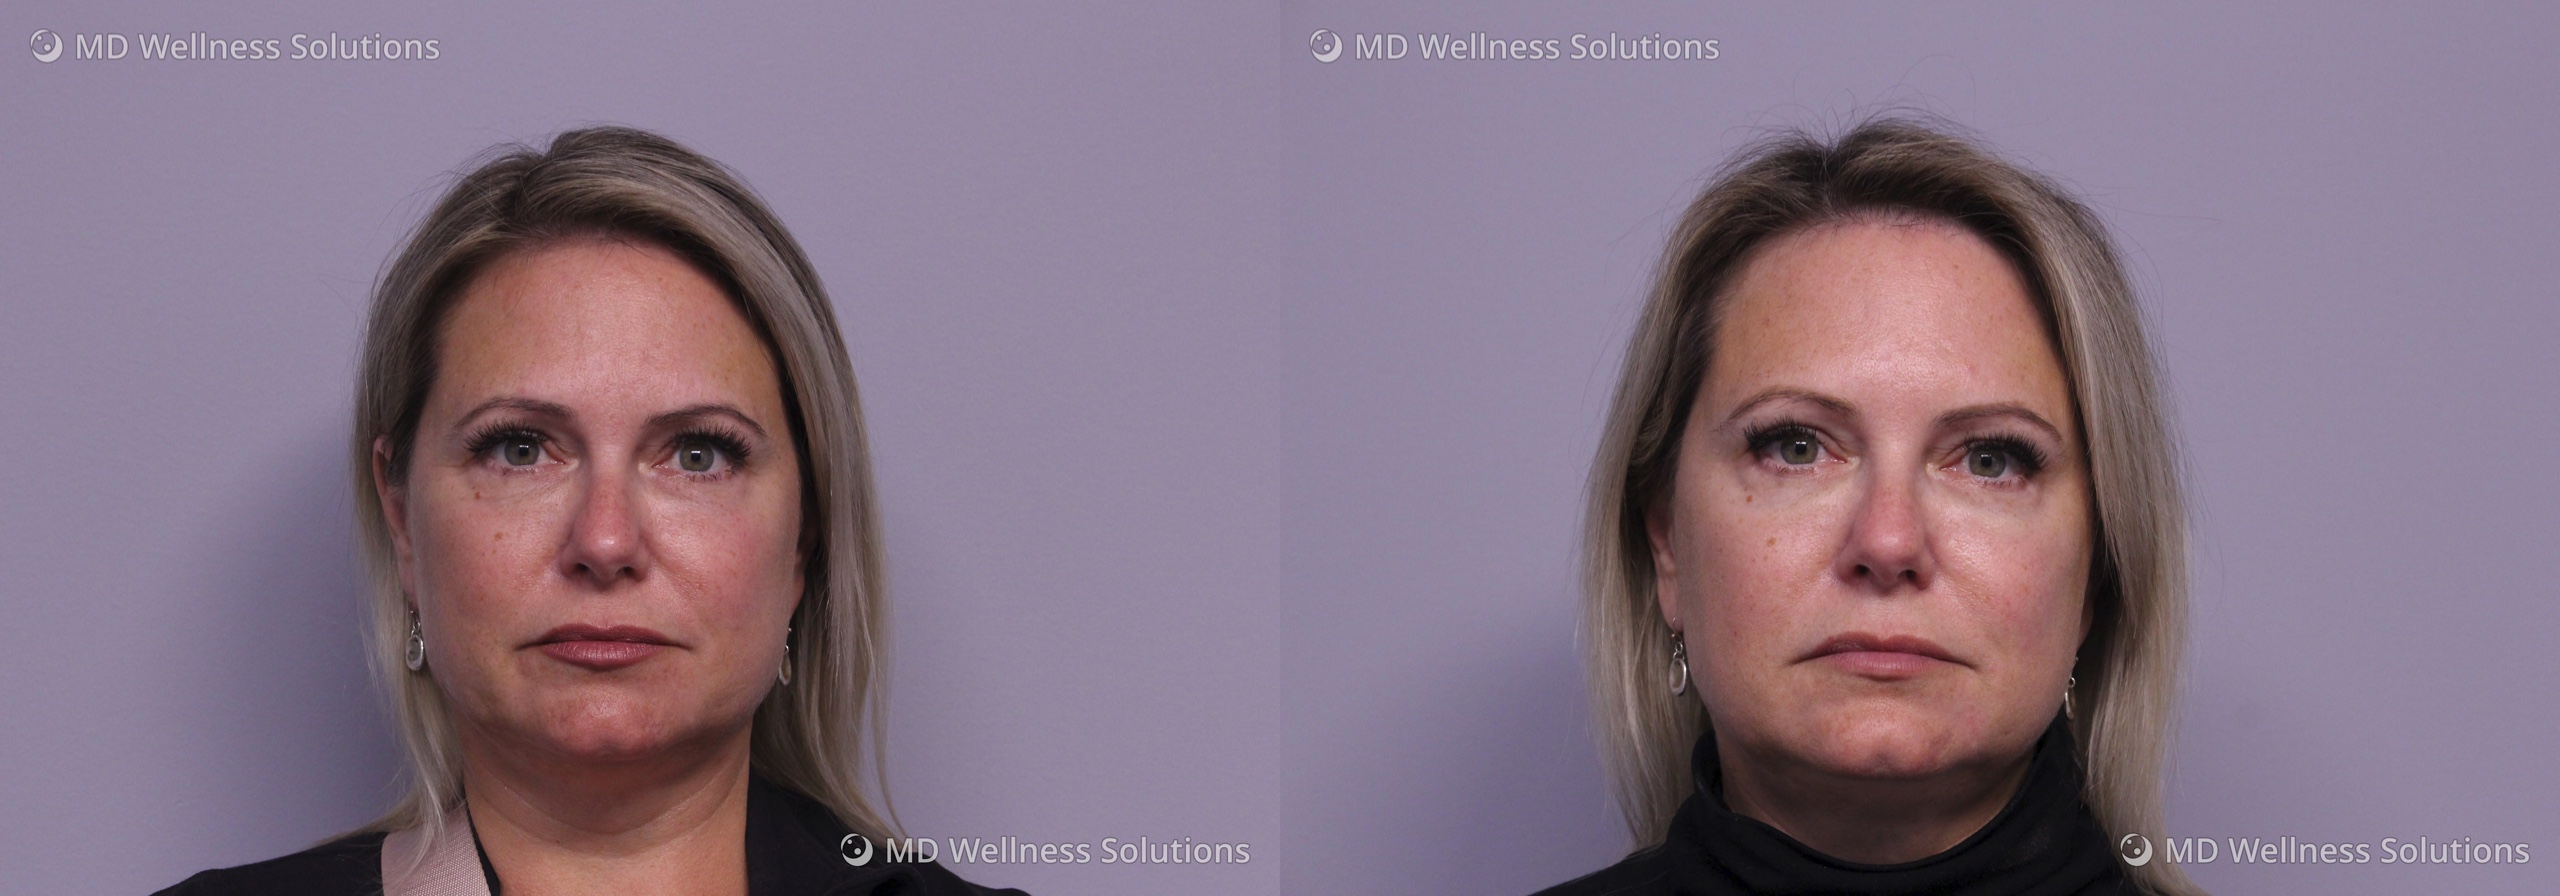 45-54 year old woman before and after dermal filler treatment